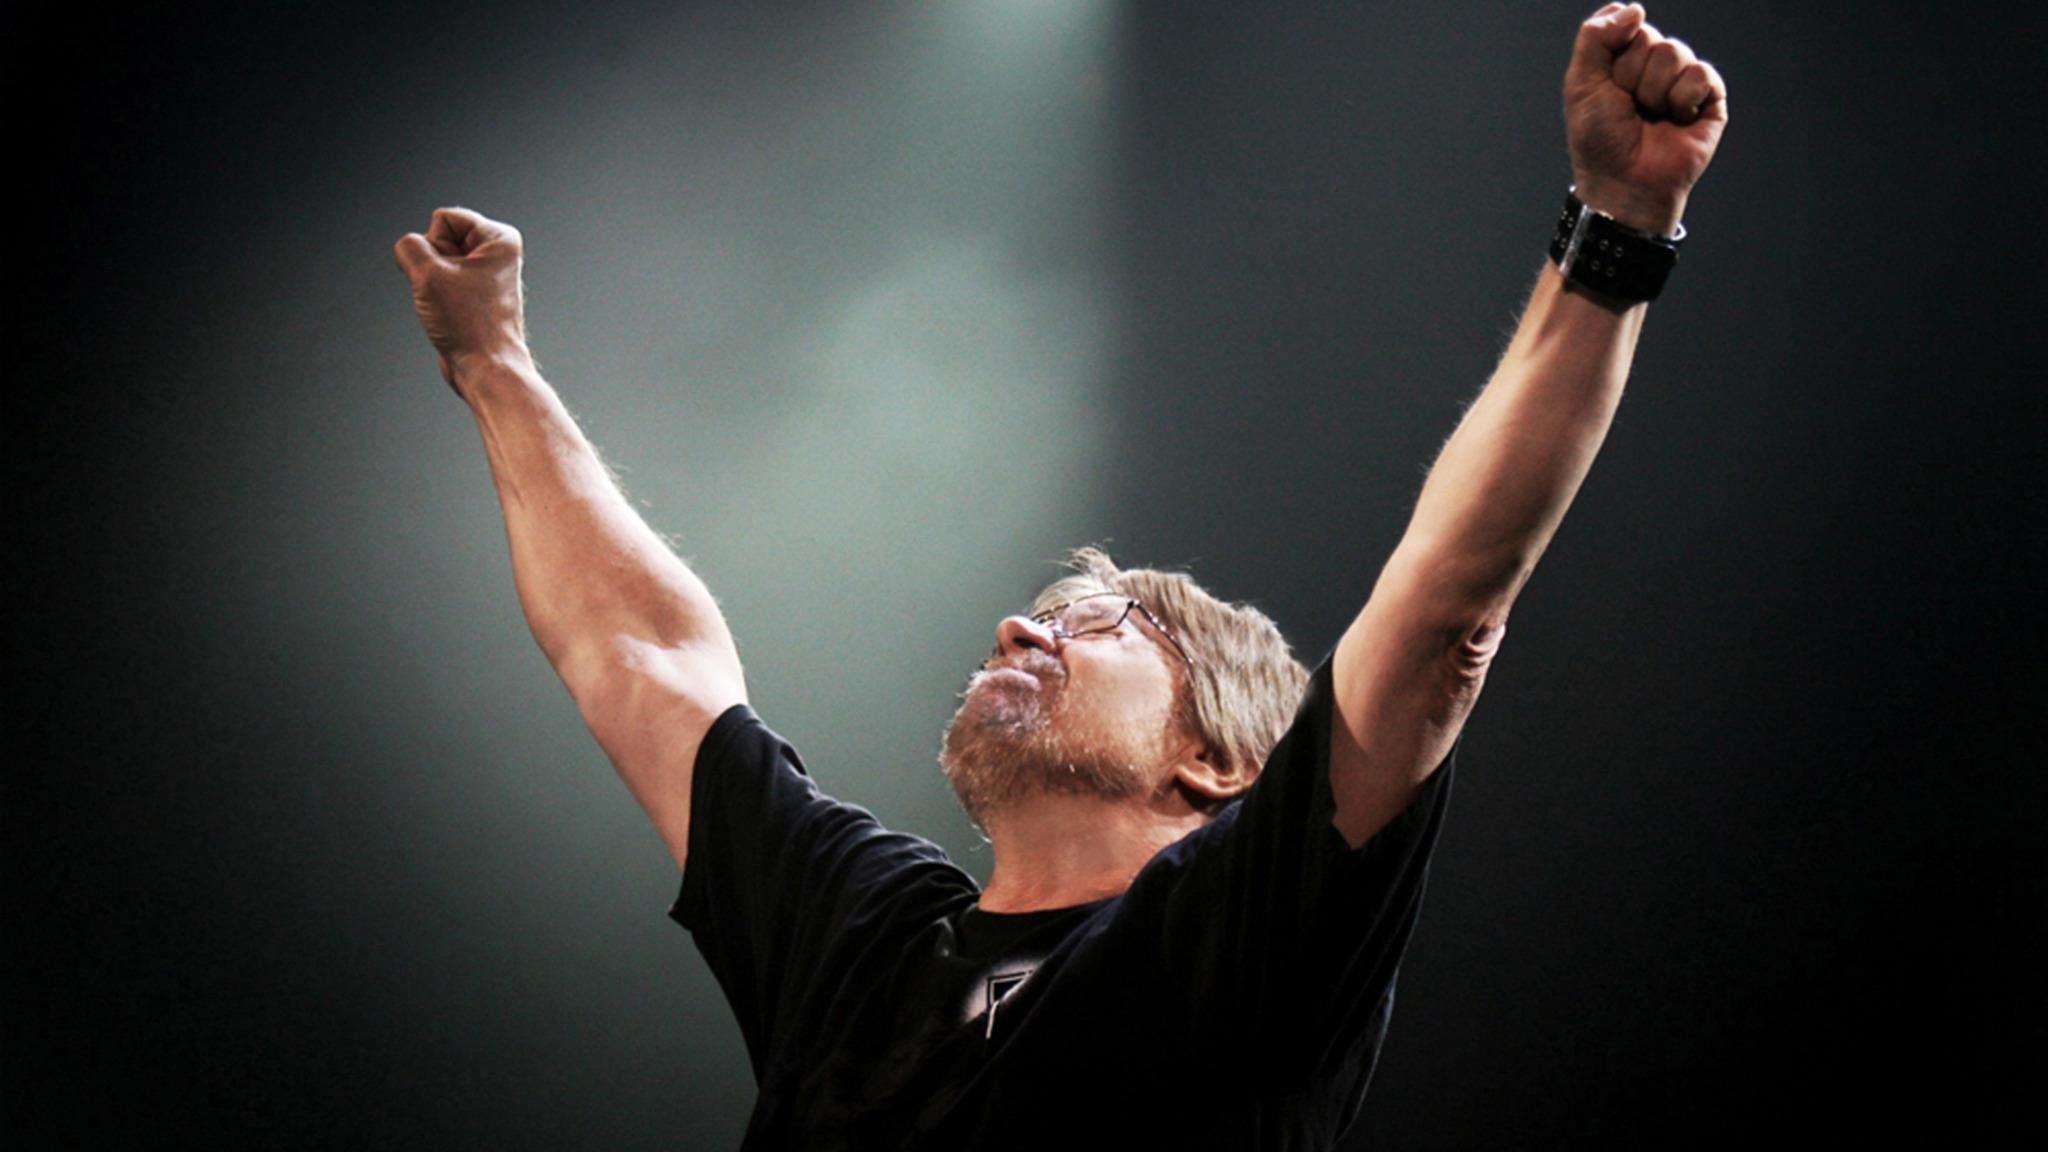 Bob Seger & The Silver Bullet Band at Mohegan Sun Arena